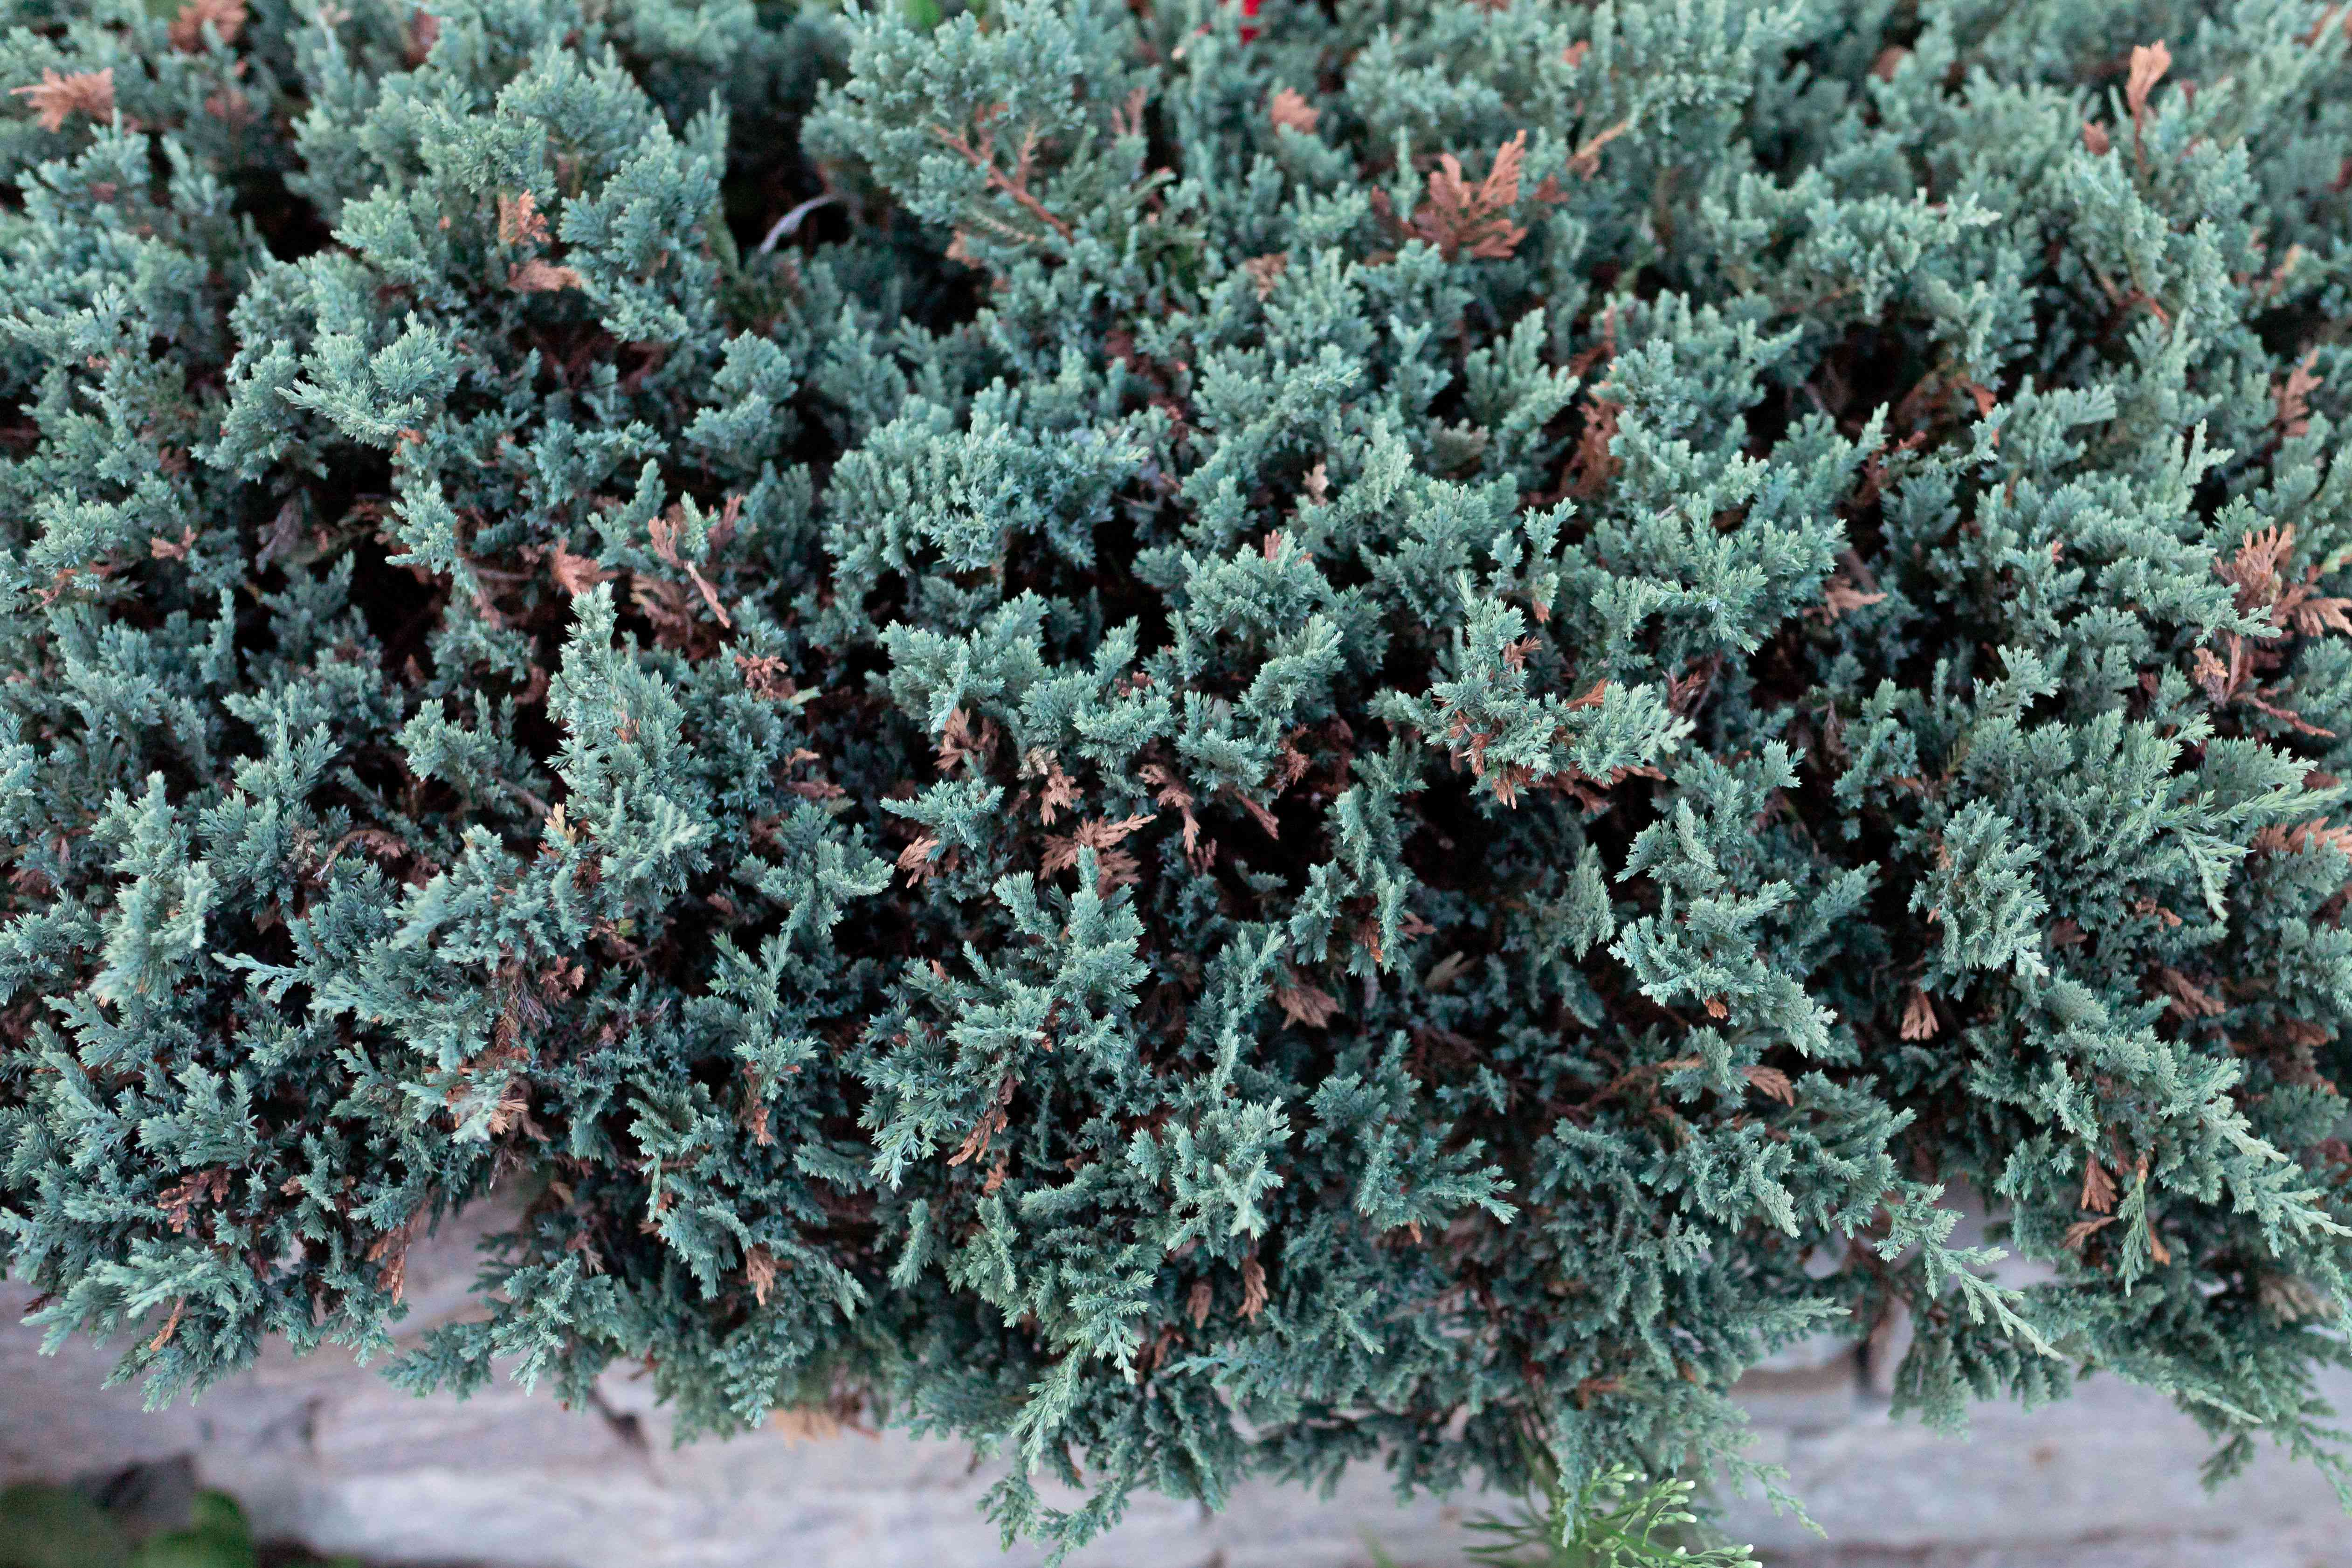 Blue rug juniper plant with flat blue-green foliage above rock